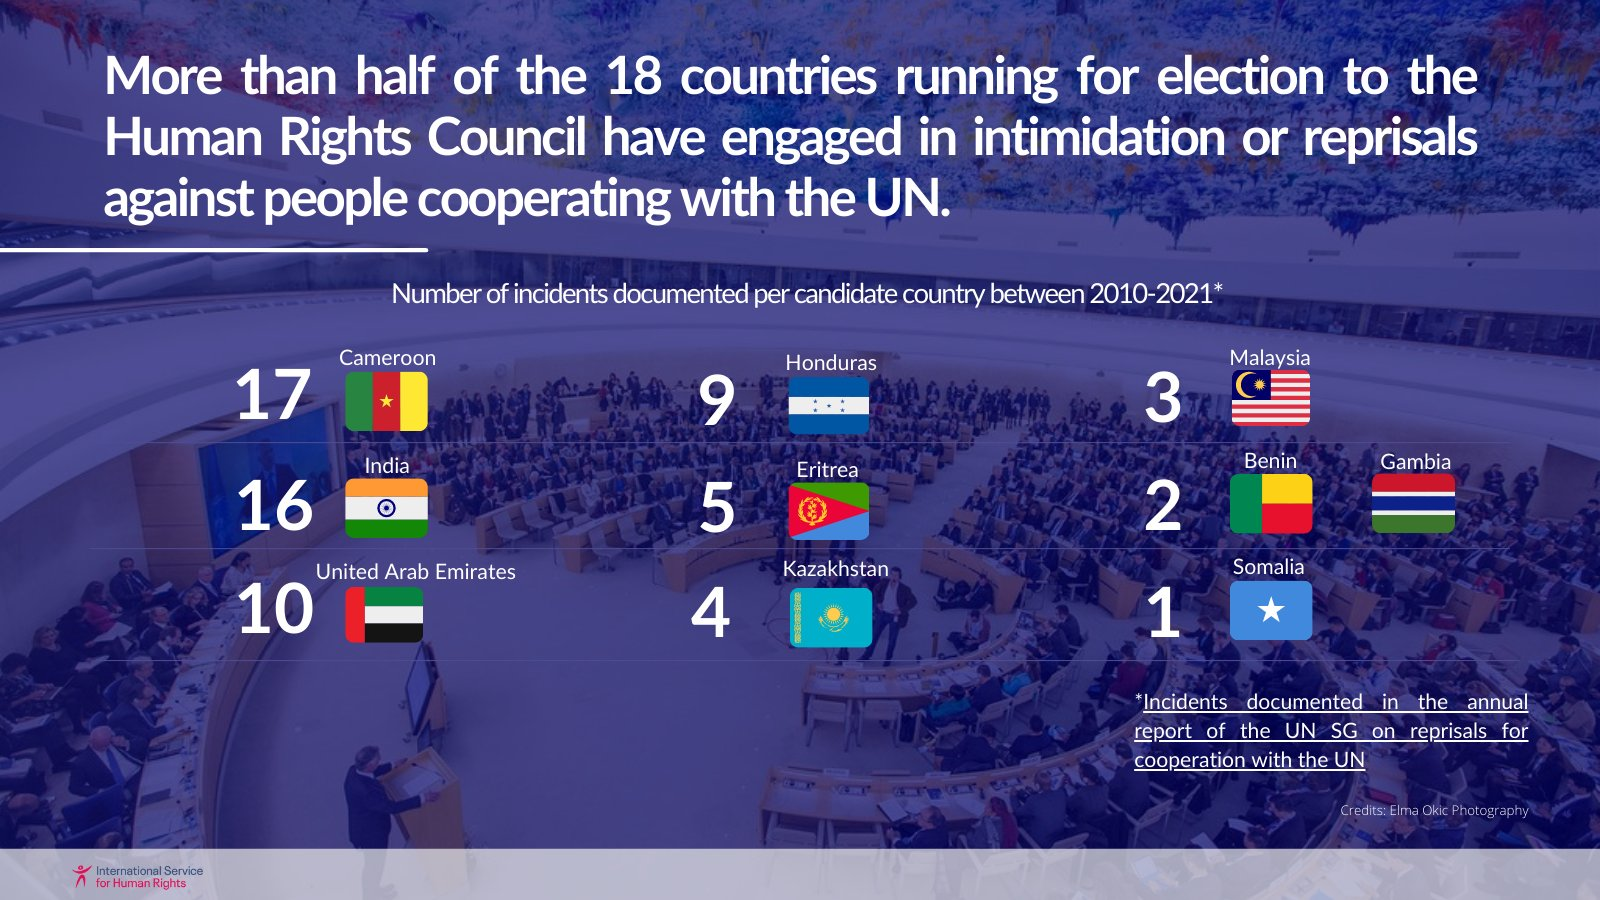 Number of reprisals and intimidation incidents documented per candidate country between 2010-2021.